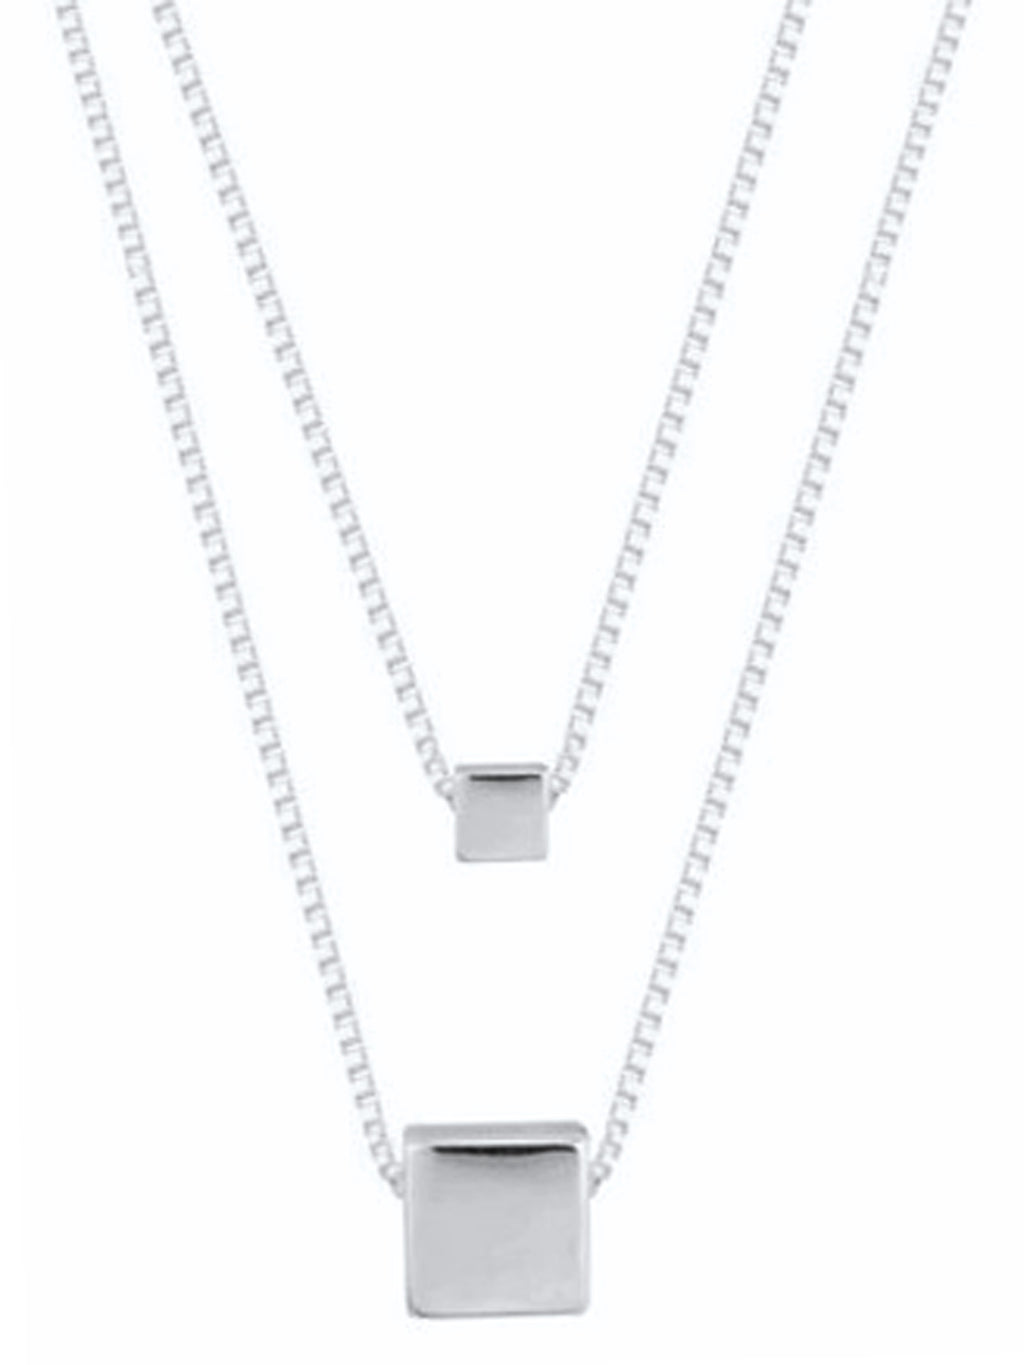 Sterling Silver Plated Two Row Necklace With Square Pendant